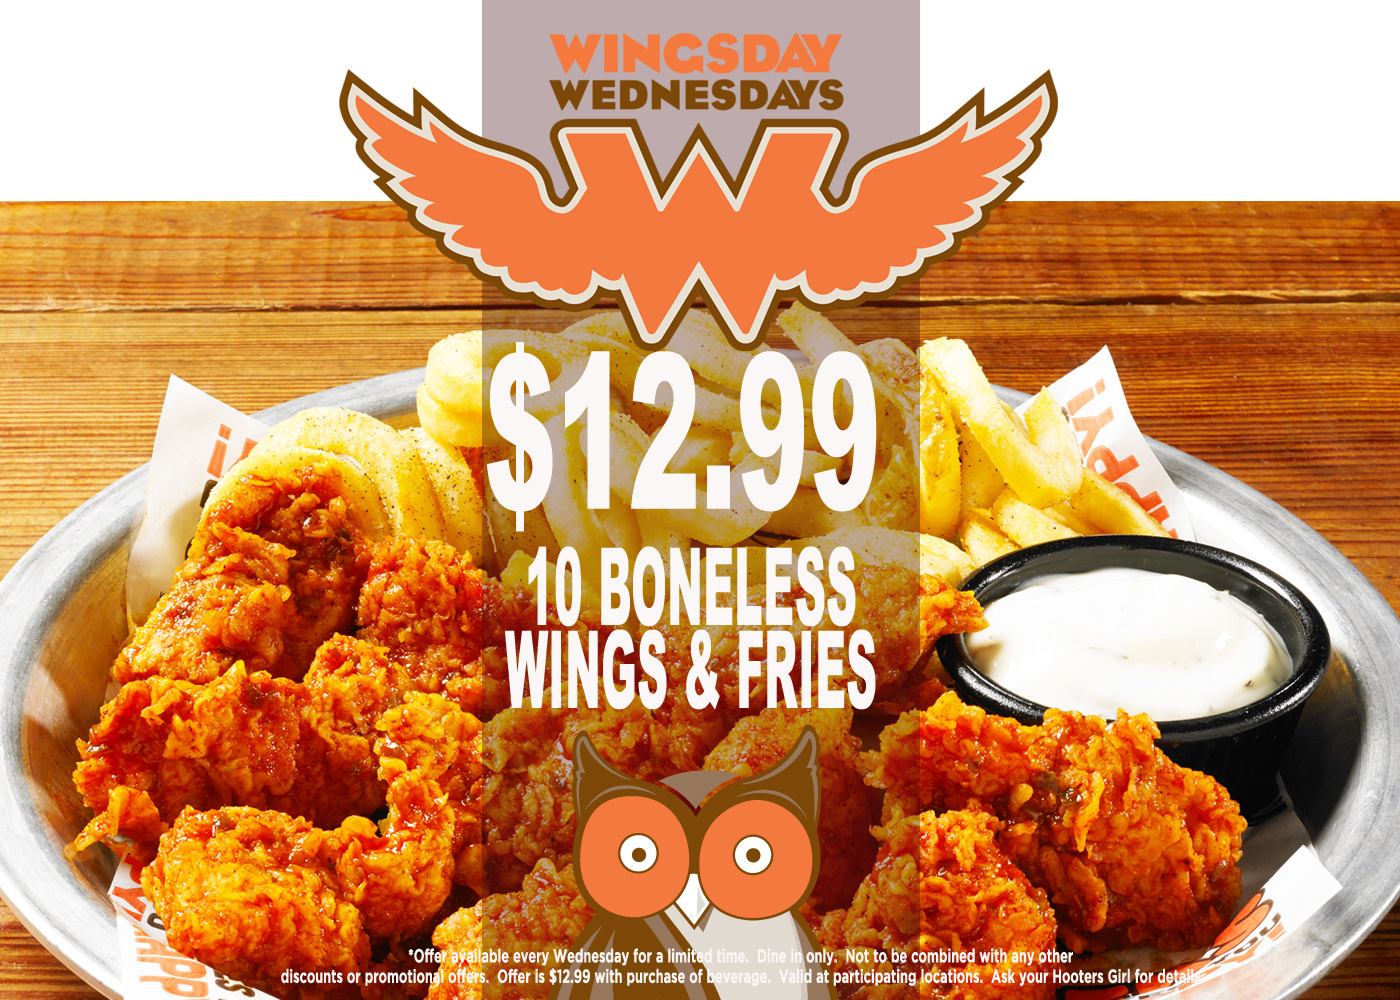 Wingsday-Inserts-both-stores